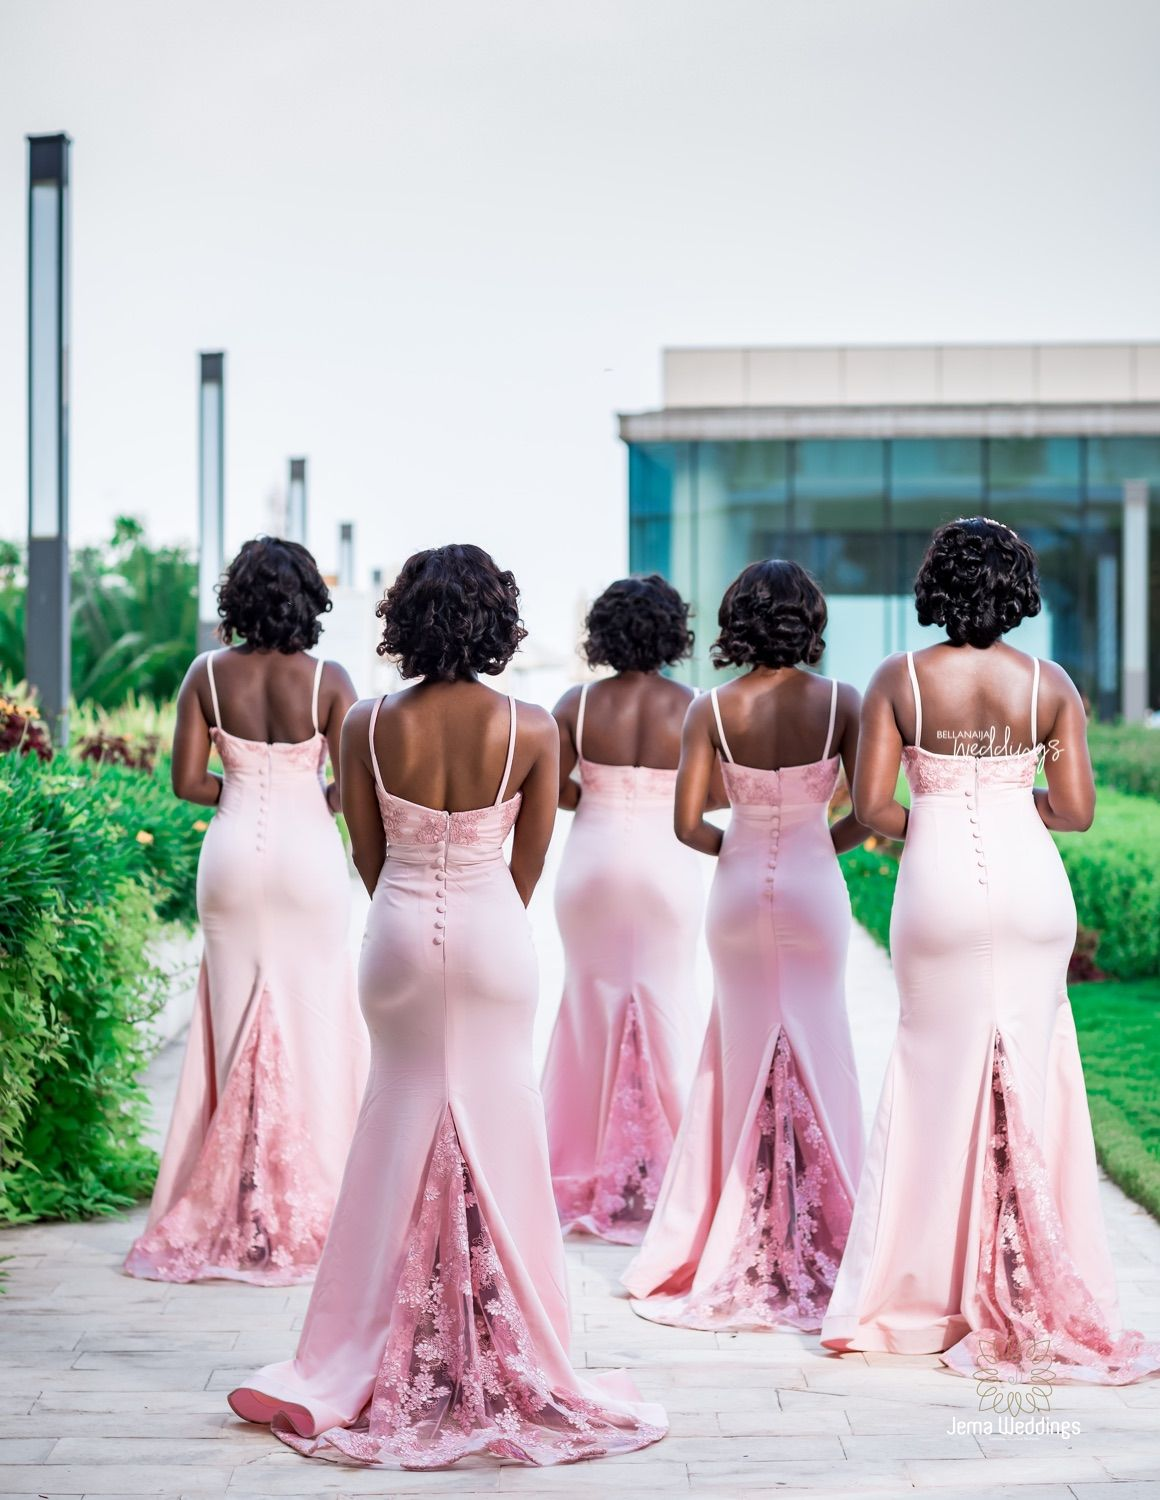 We Can T Get Enough Of The Anderclaude9 White Wedding In Ghana Beautiful Bridesmaid Dresses Bridesmaid Attire Couple Wedding Dress [ 1500 x 1160 Pixel ]